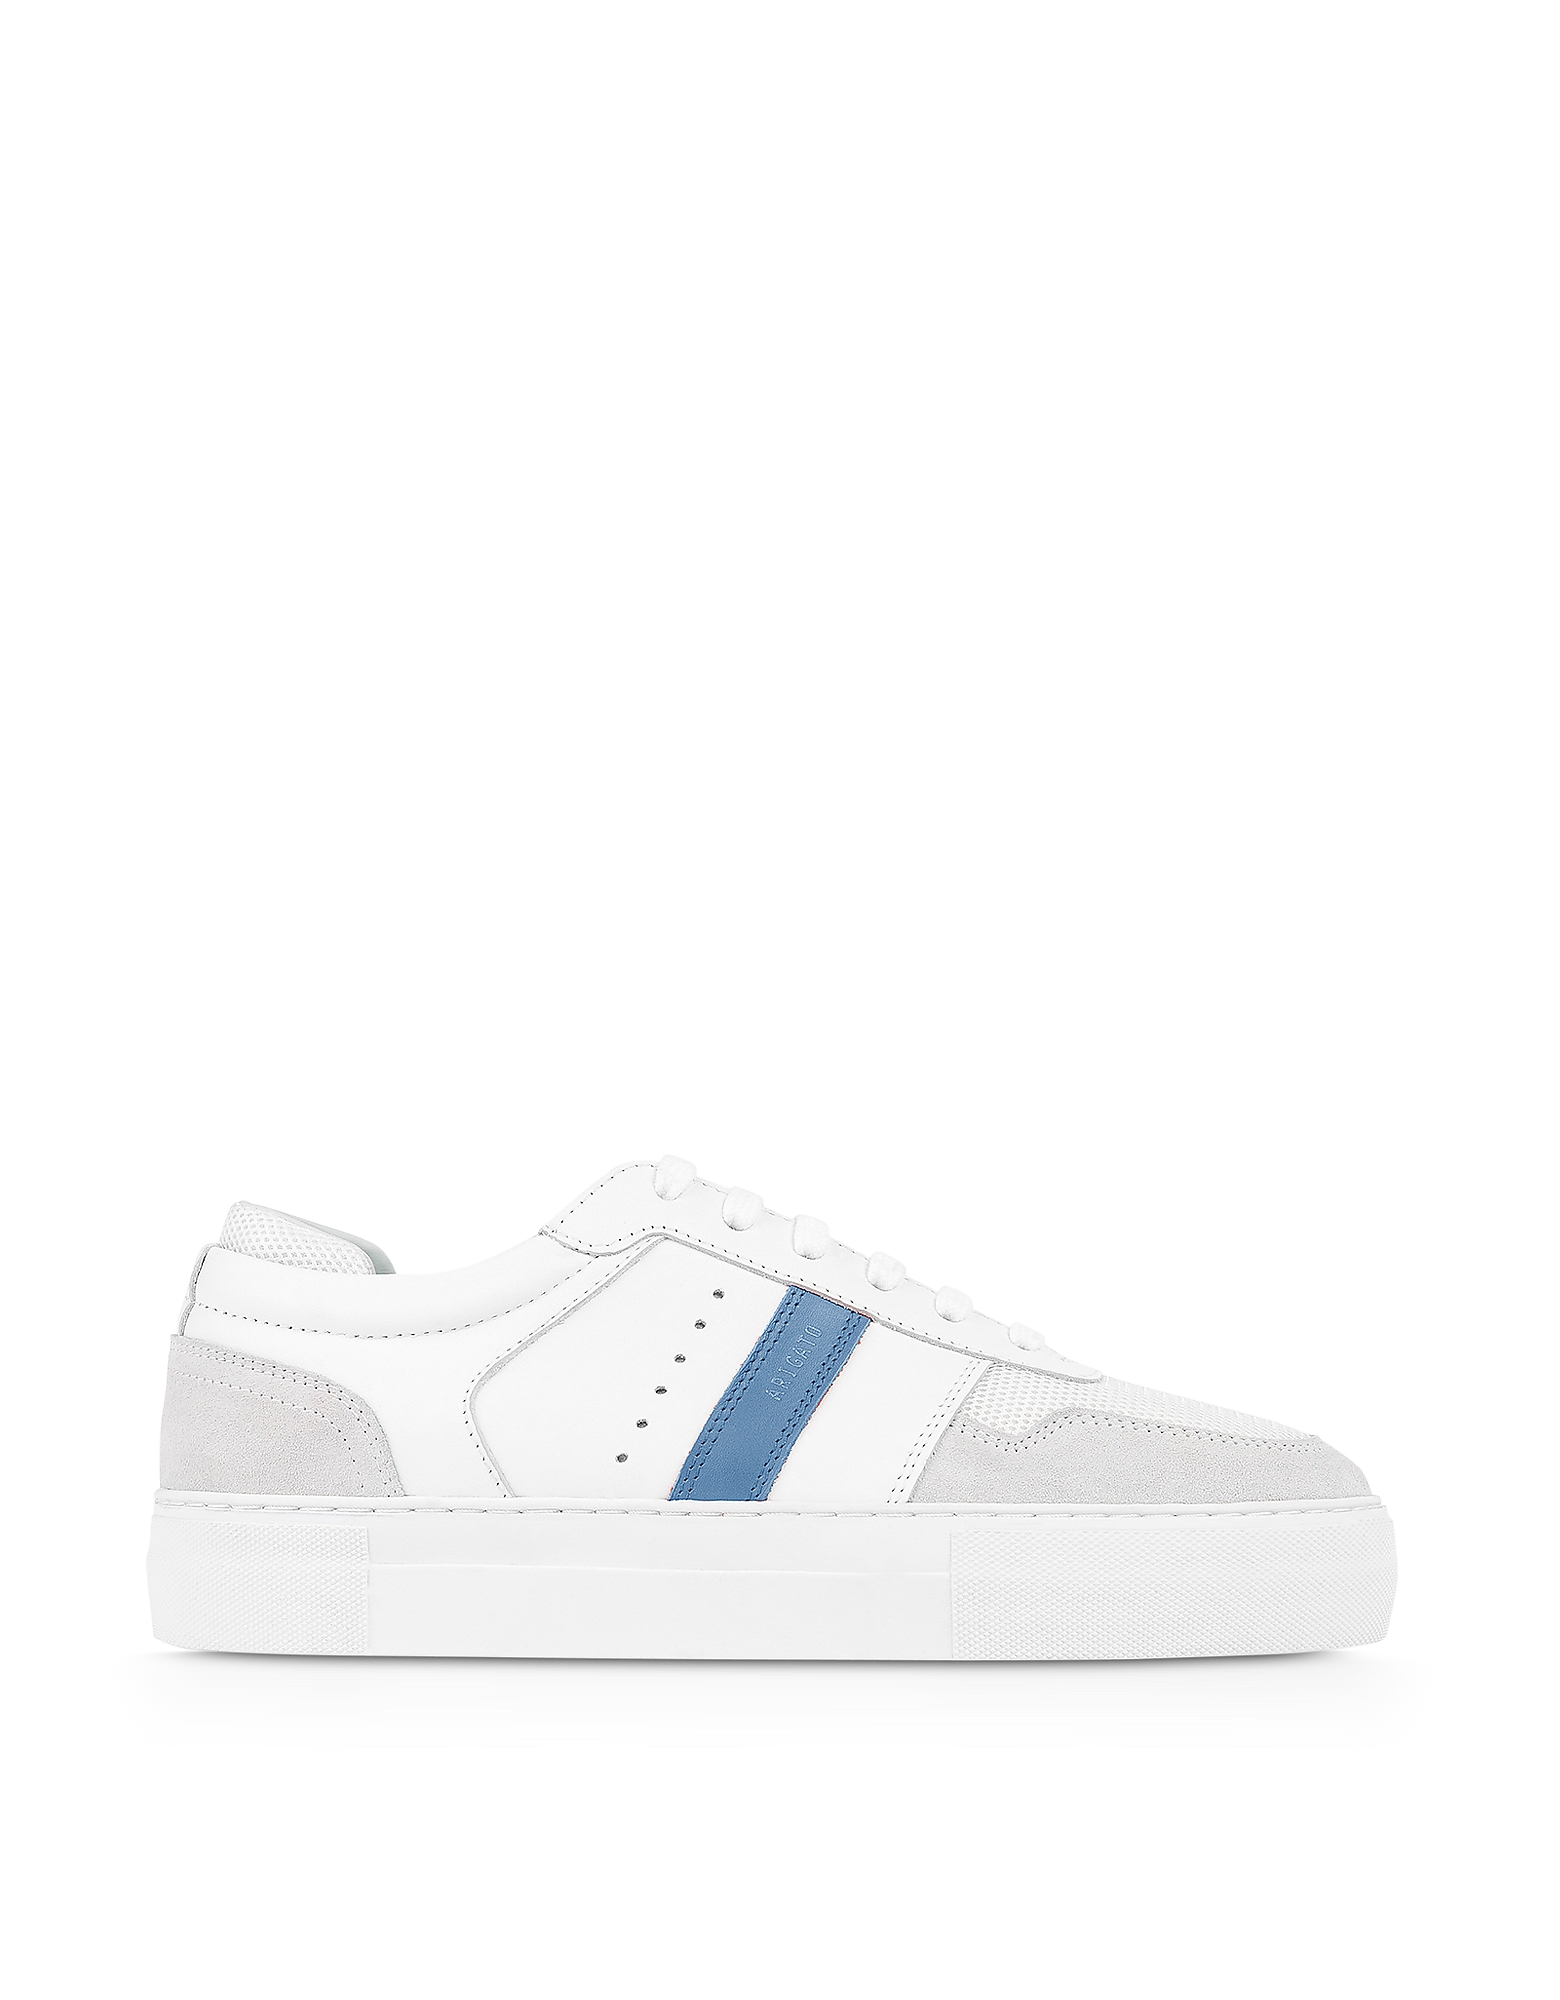 Detailed Platform White/Dusty Blue Leather Women's Sneakers